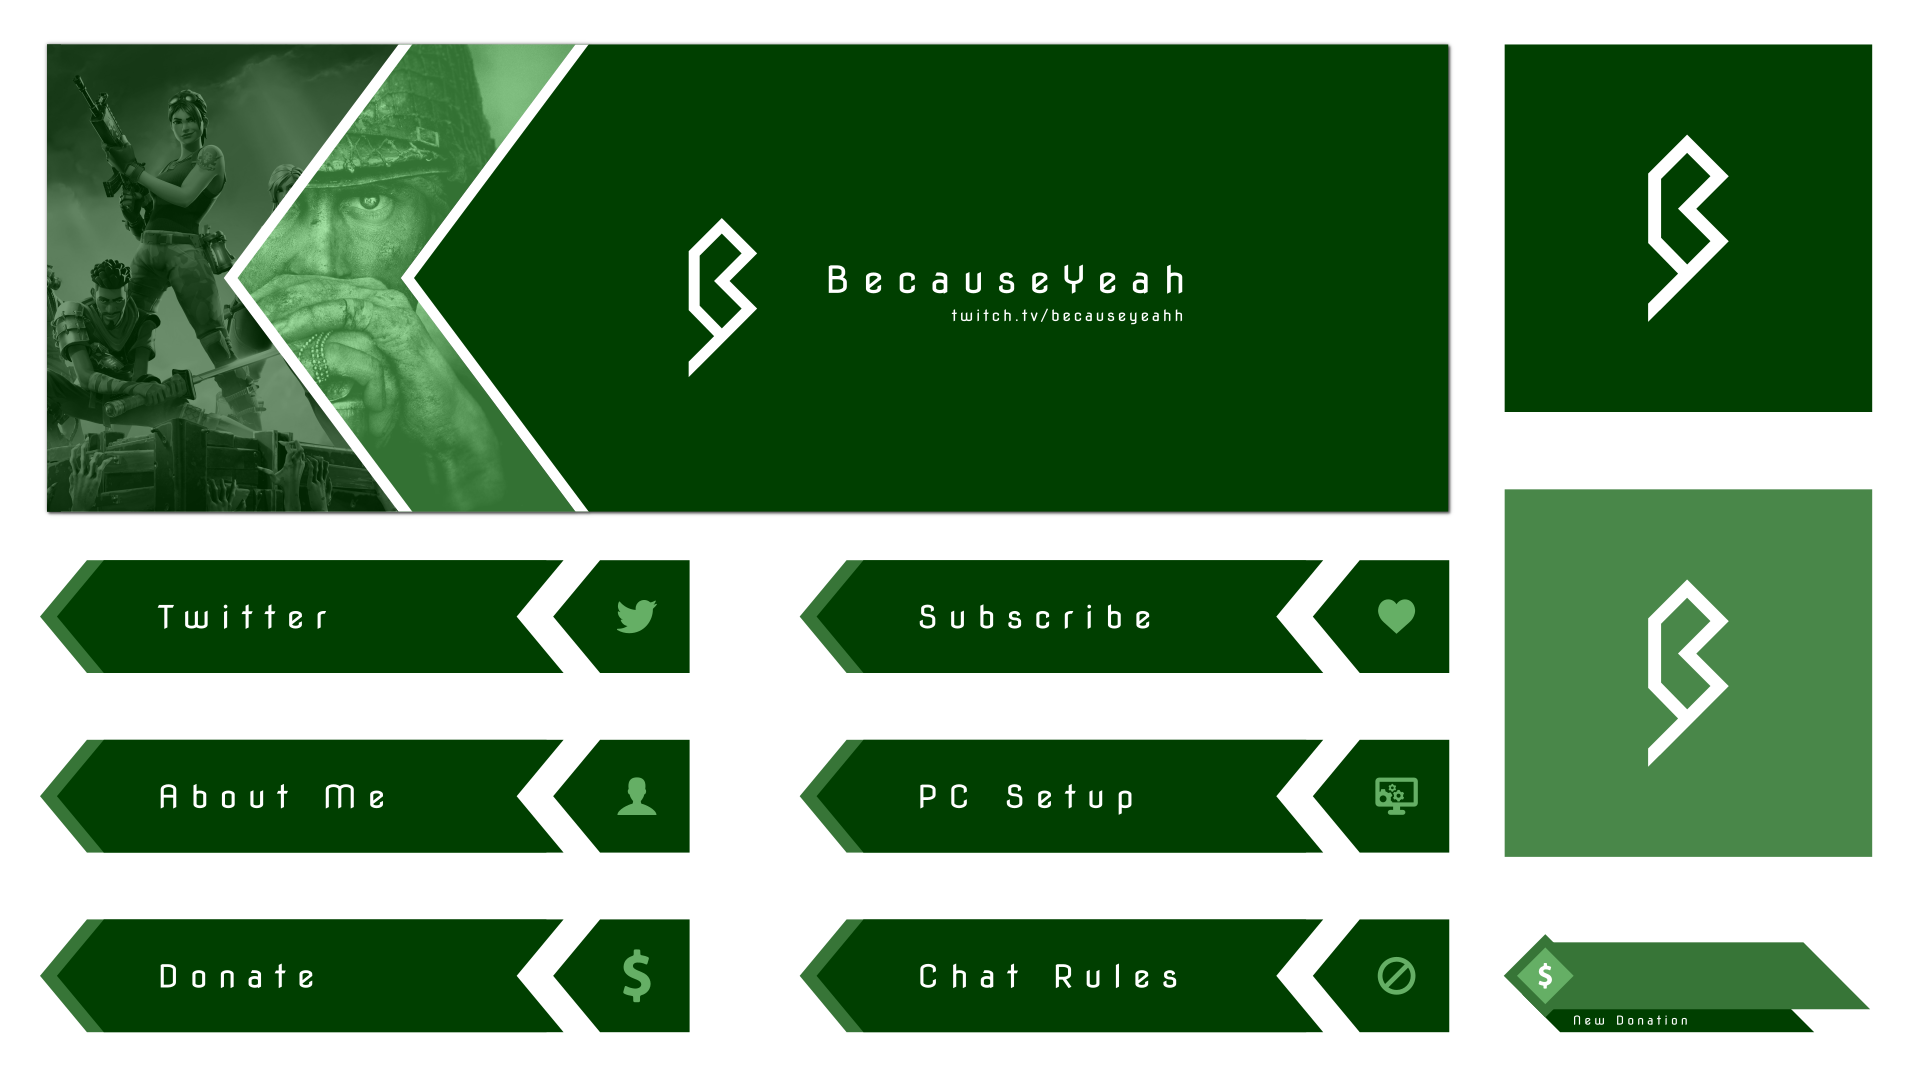 Simple stream layout for a customer using a lot of green and sharp angles.